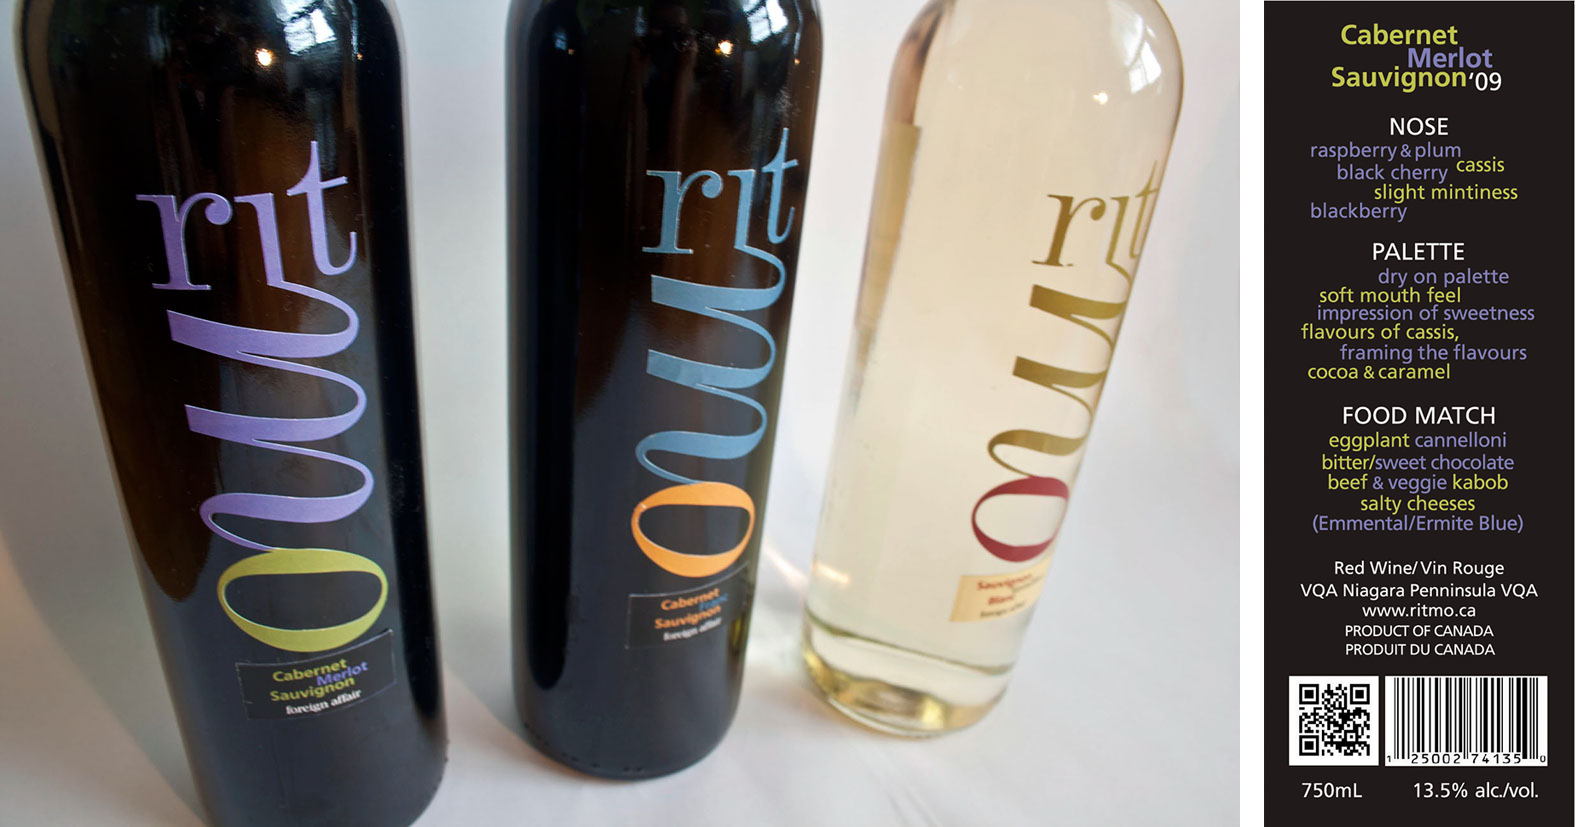 Wine Bottle Labels (left); Back Label (right) - inspiring people to explore and sharpen their senses